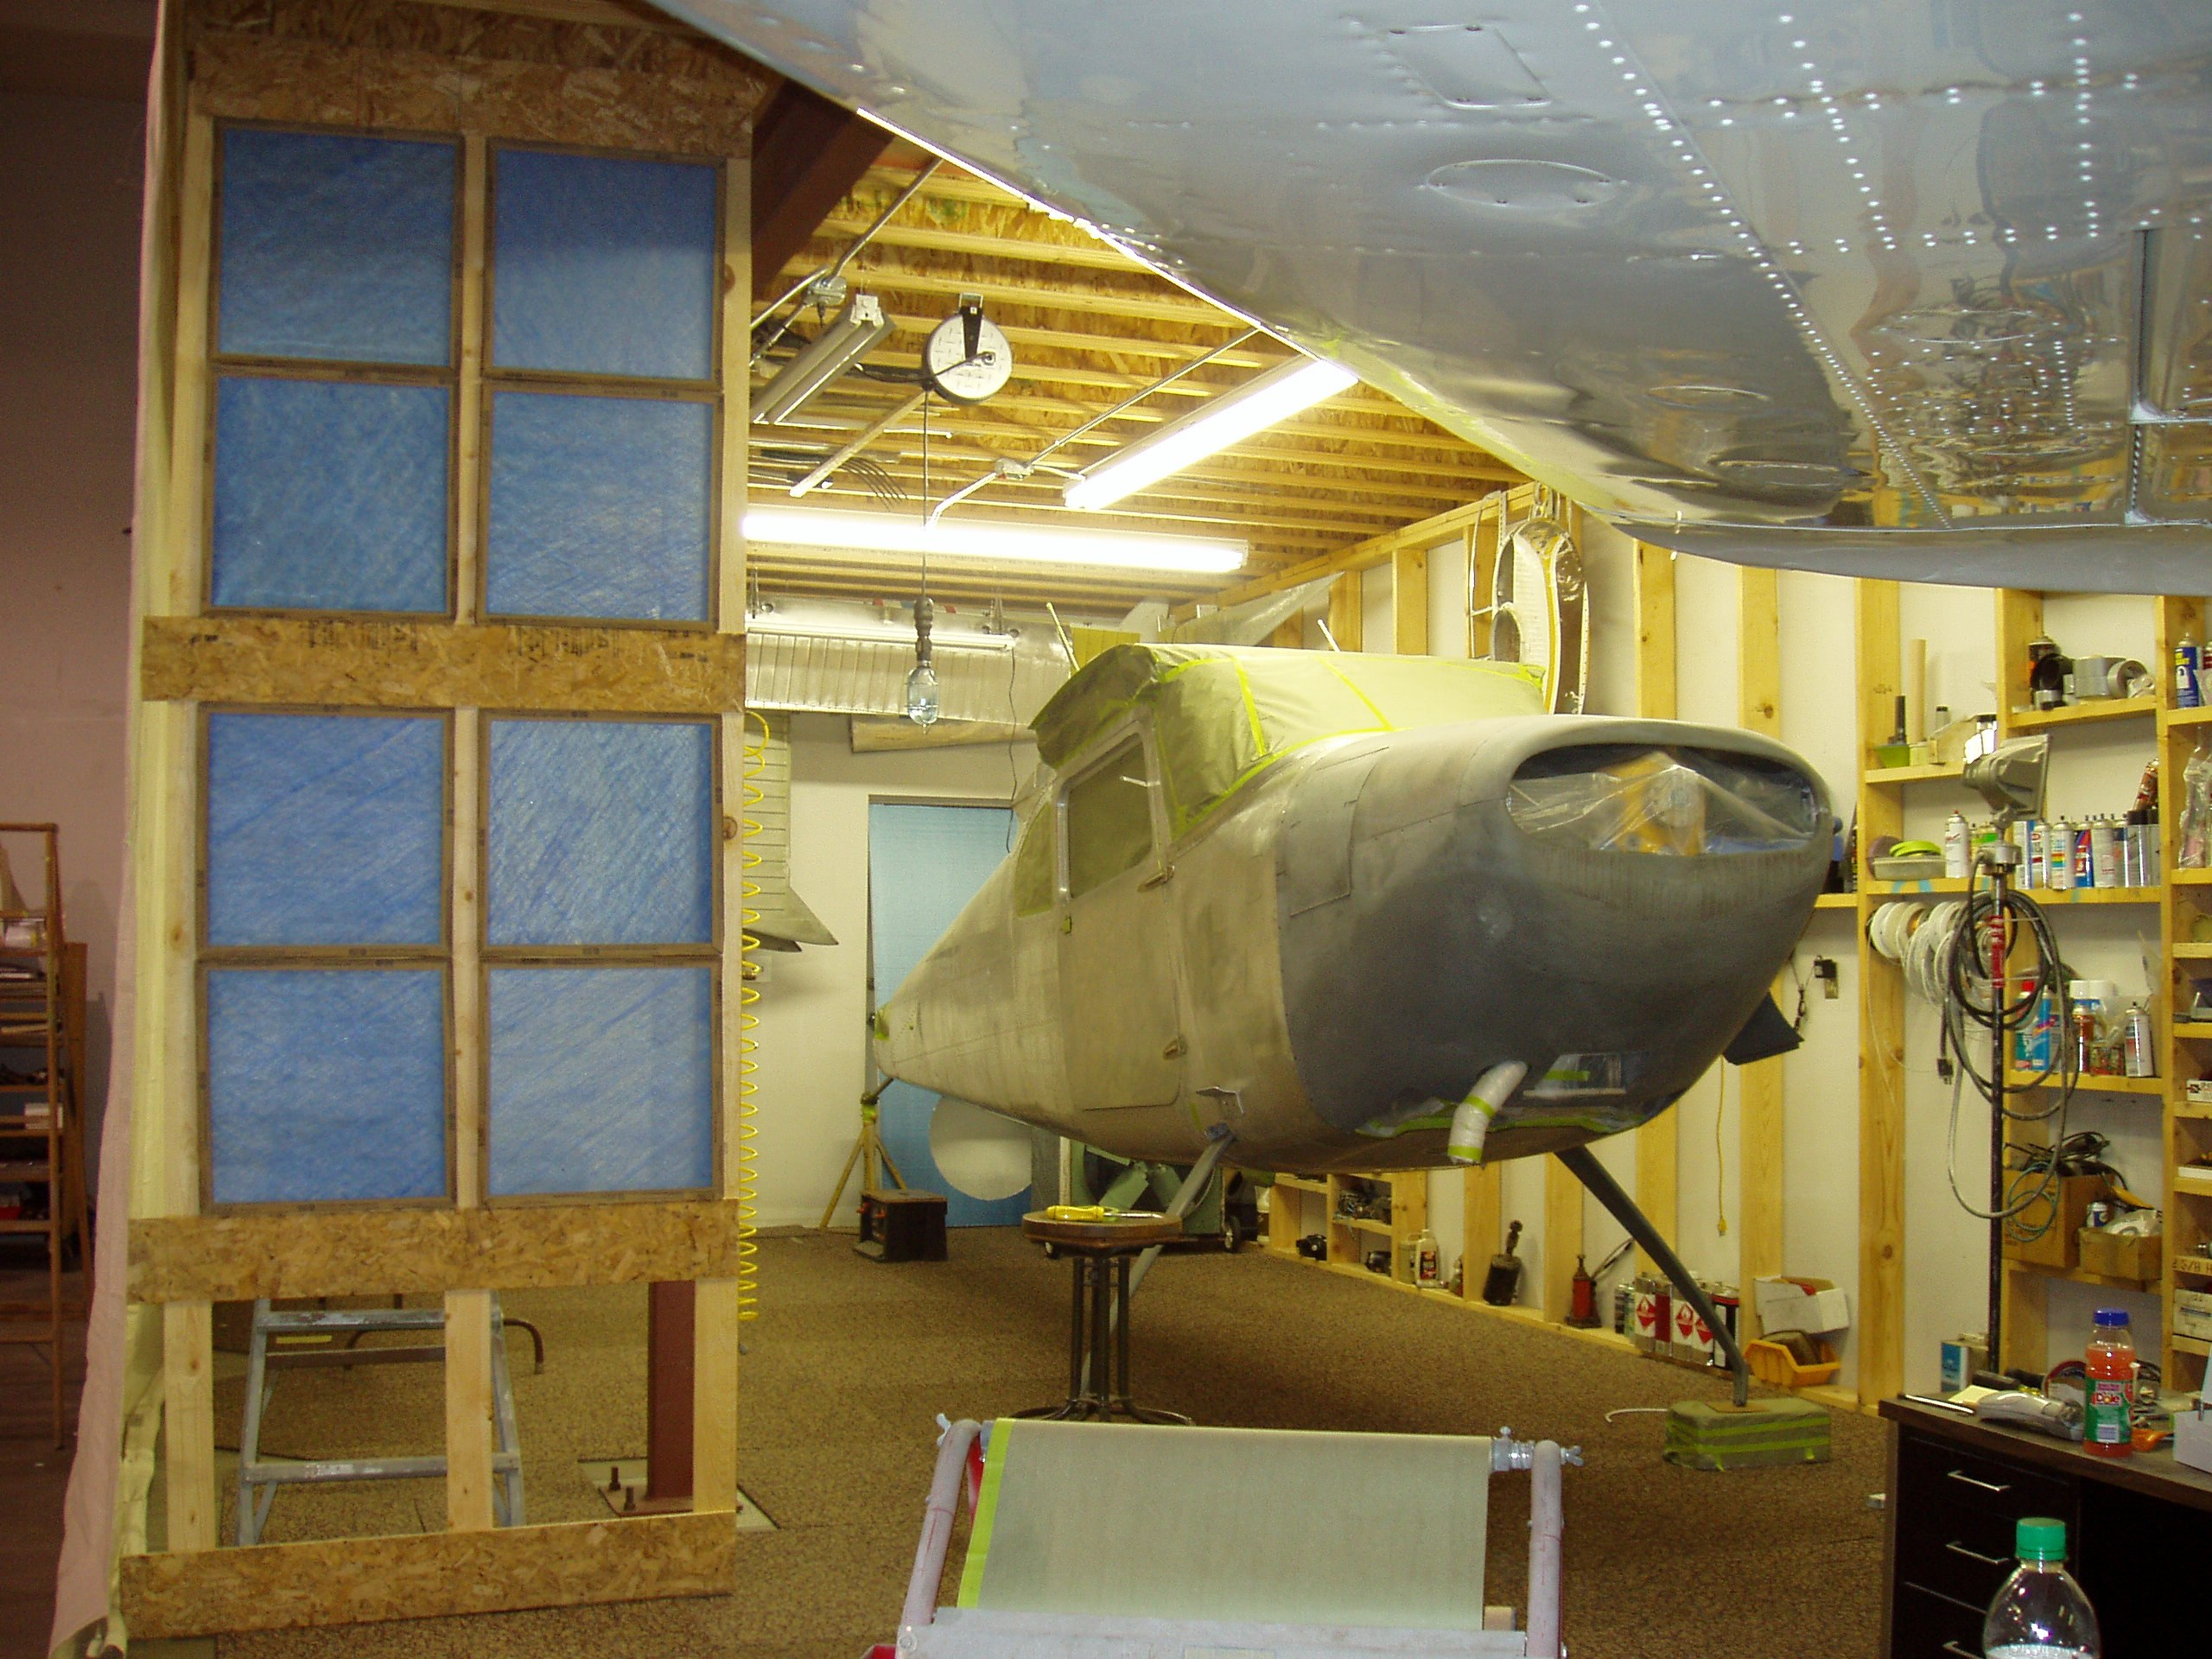 The Cessna 180 Skywagon in the paint booth - Tailwheel